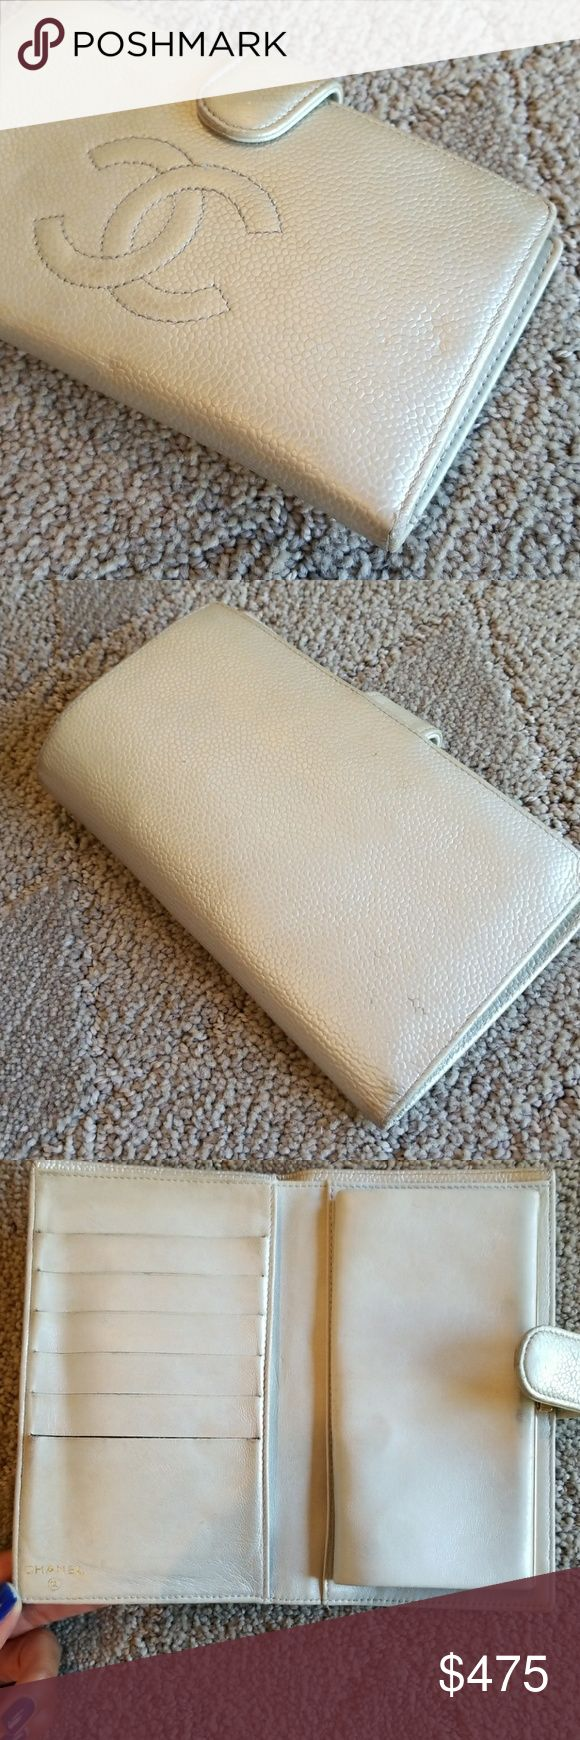 """Chanel Wallet Authentic Chanel. Used with Love. Excellent condition. Normal wear and tear or corners. Purchased at Bellagio in Vegas. Classic wallet. 6.75"""" L x 4"""" H x 1/2"""" D (opens wider obviously) No trades. Will not communicate outside of Poshmark. No spam comments please! CHANEL Bags Wallets"""